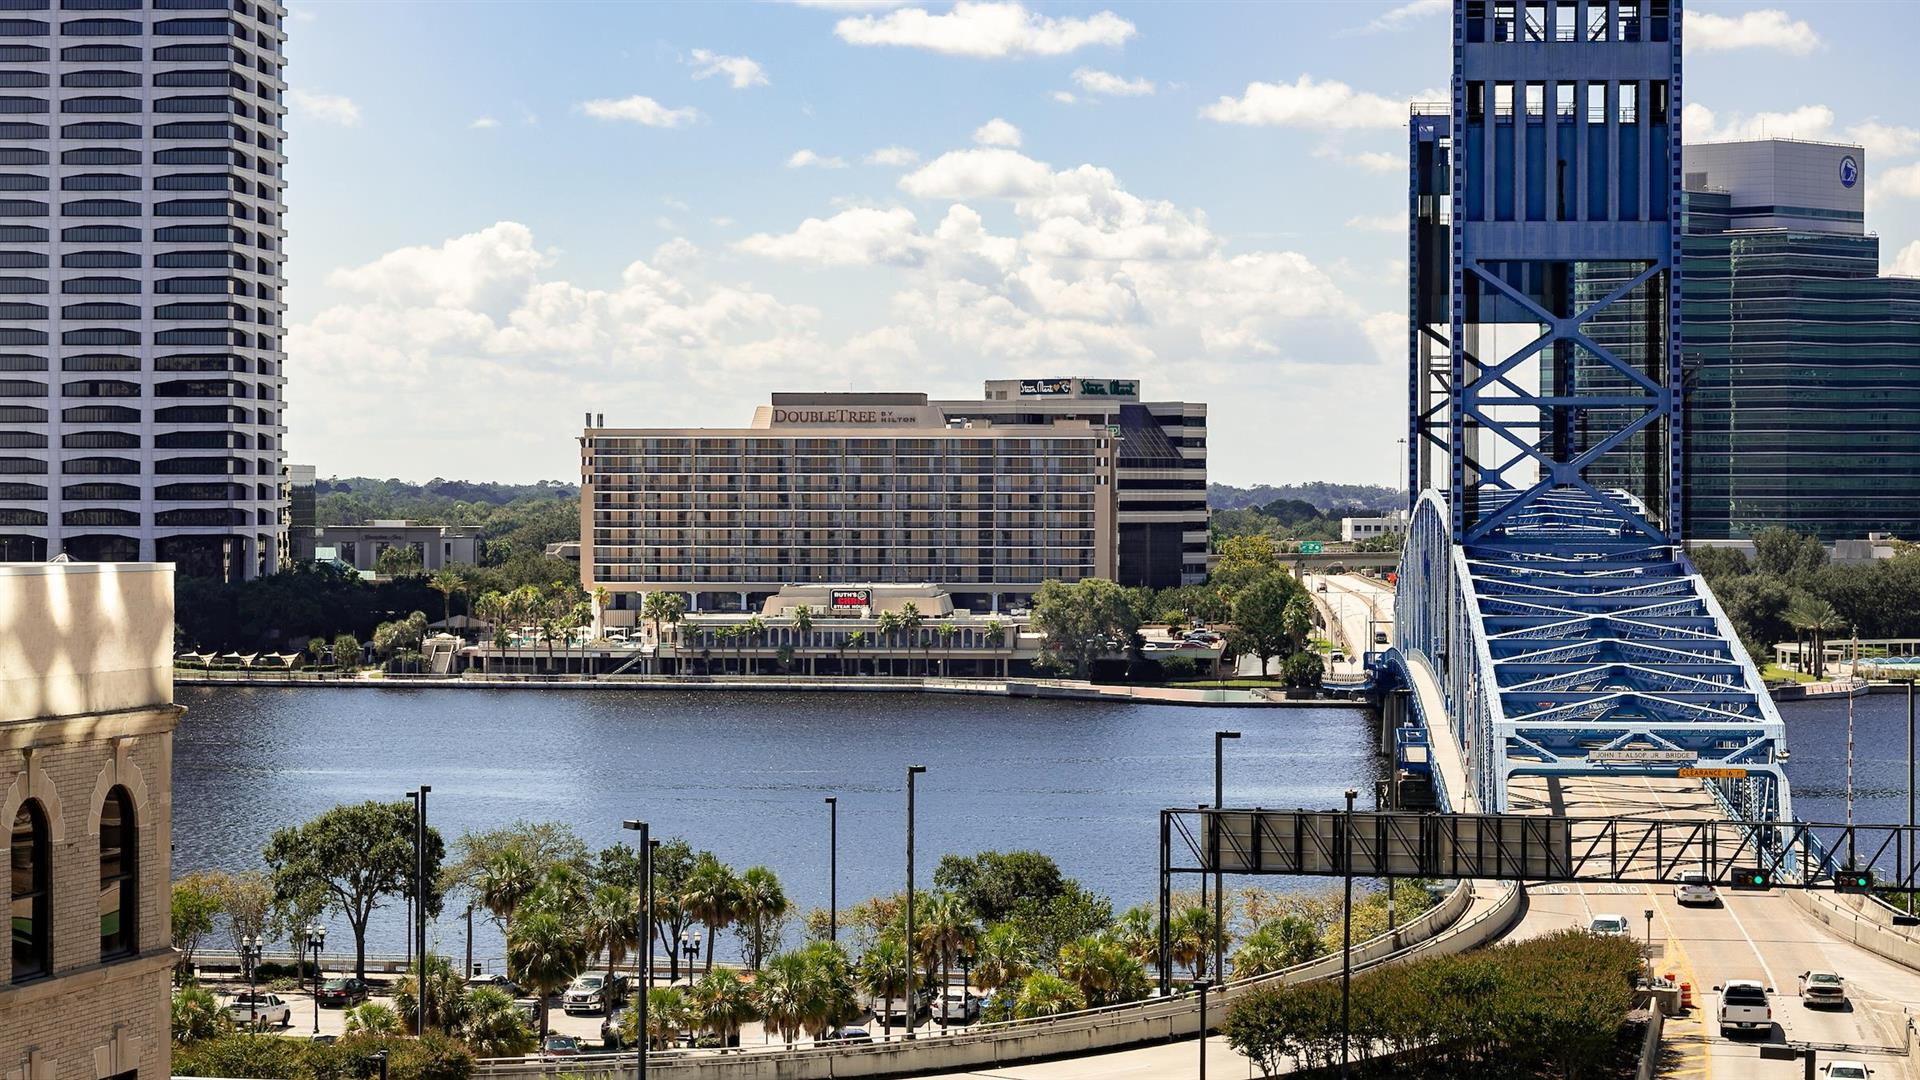 Meetings And Events At Doubletree By Hilton Hotel Jacksonville Riverfront Jacksonville Fl Us